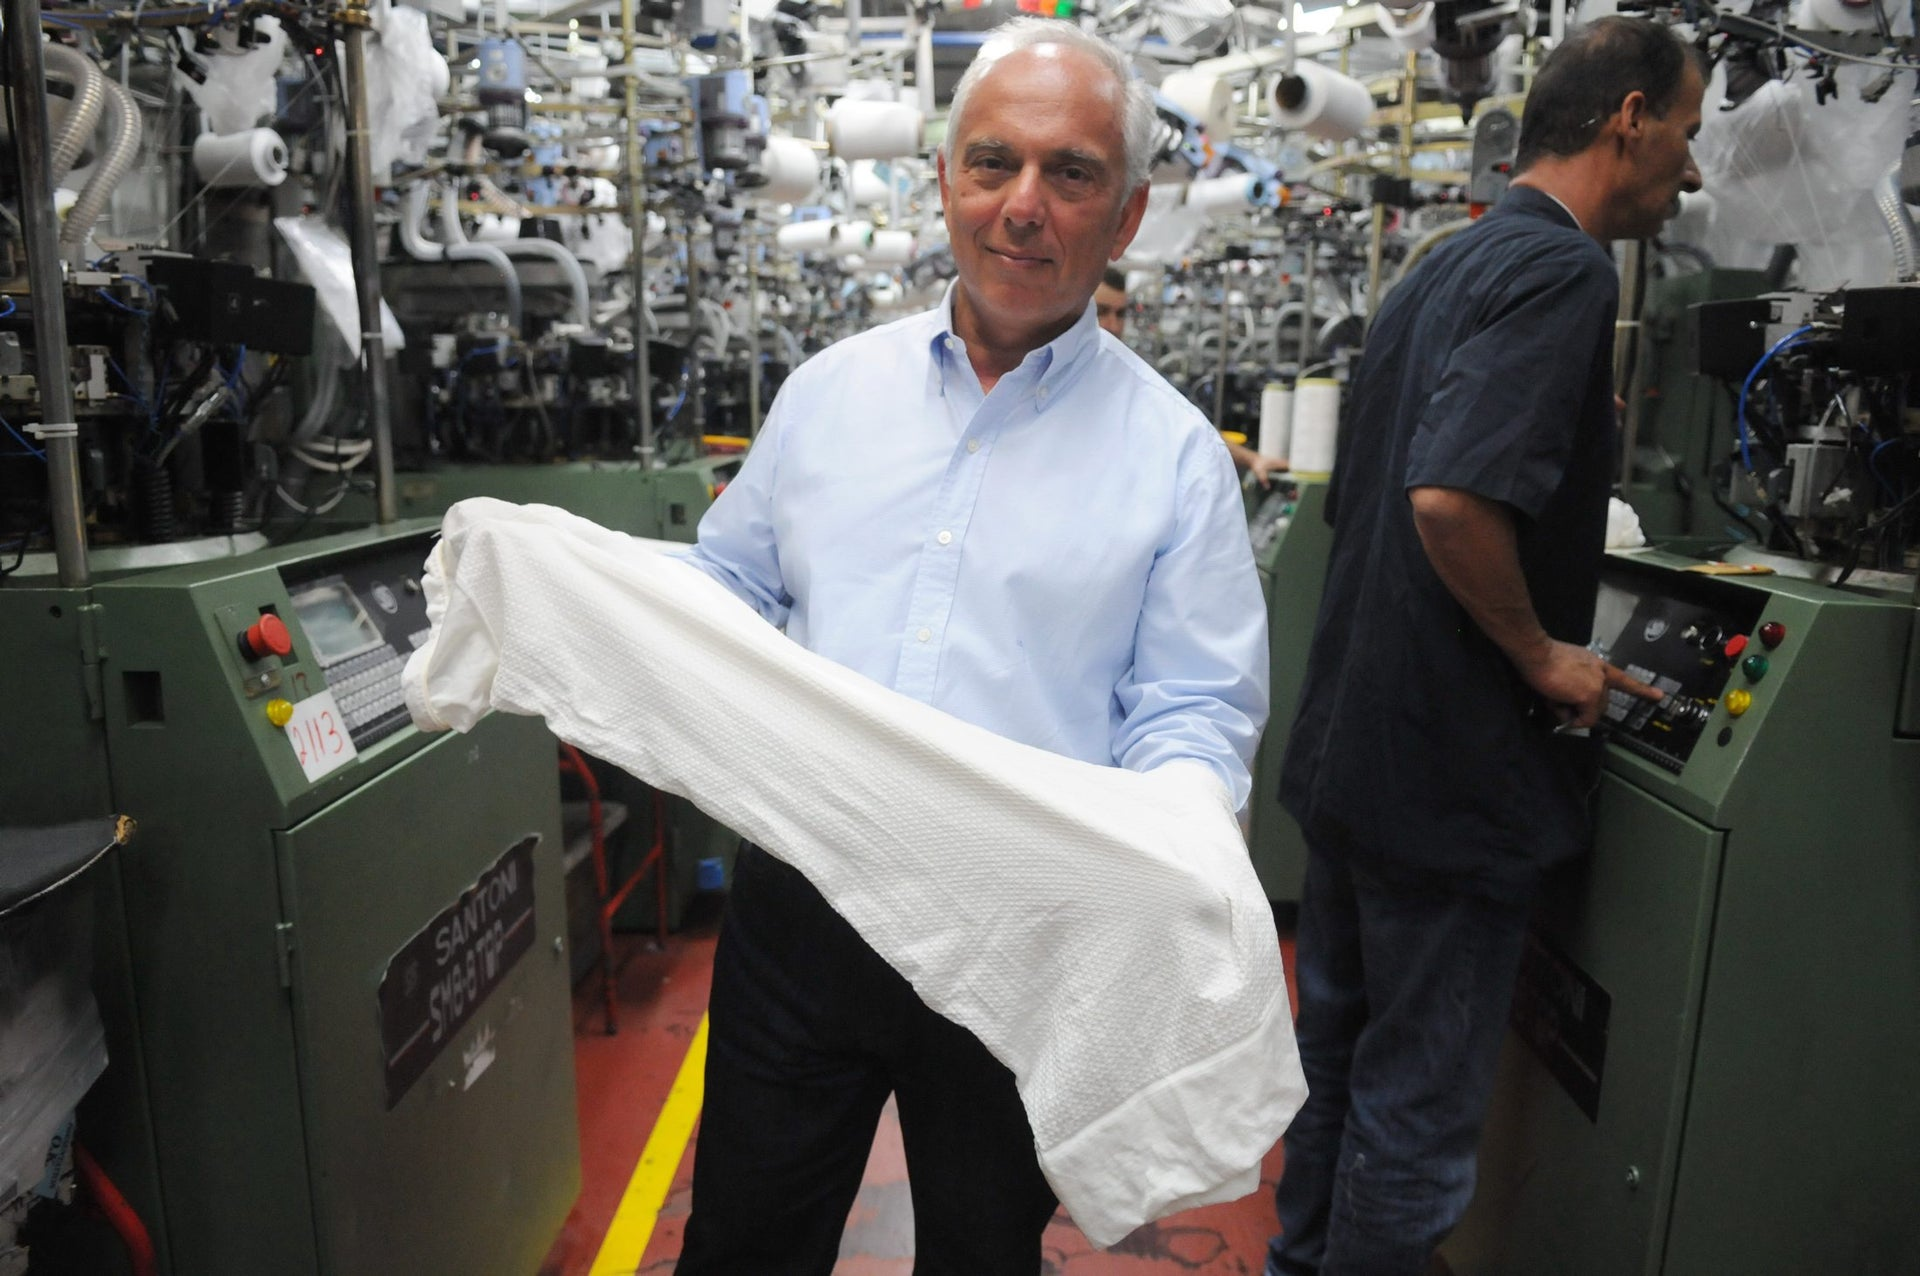 Delta Galil owner Isaac Dabah at a Delta plant in Carmiel, northern Israel.